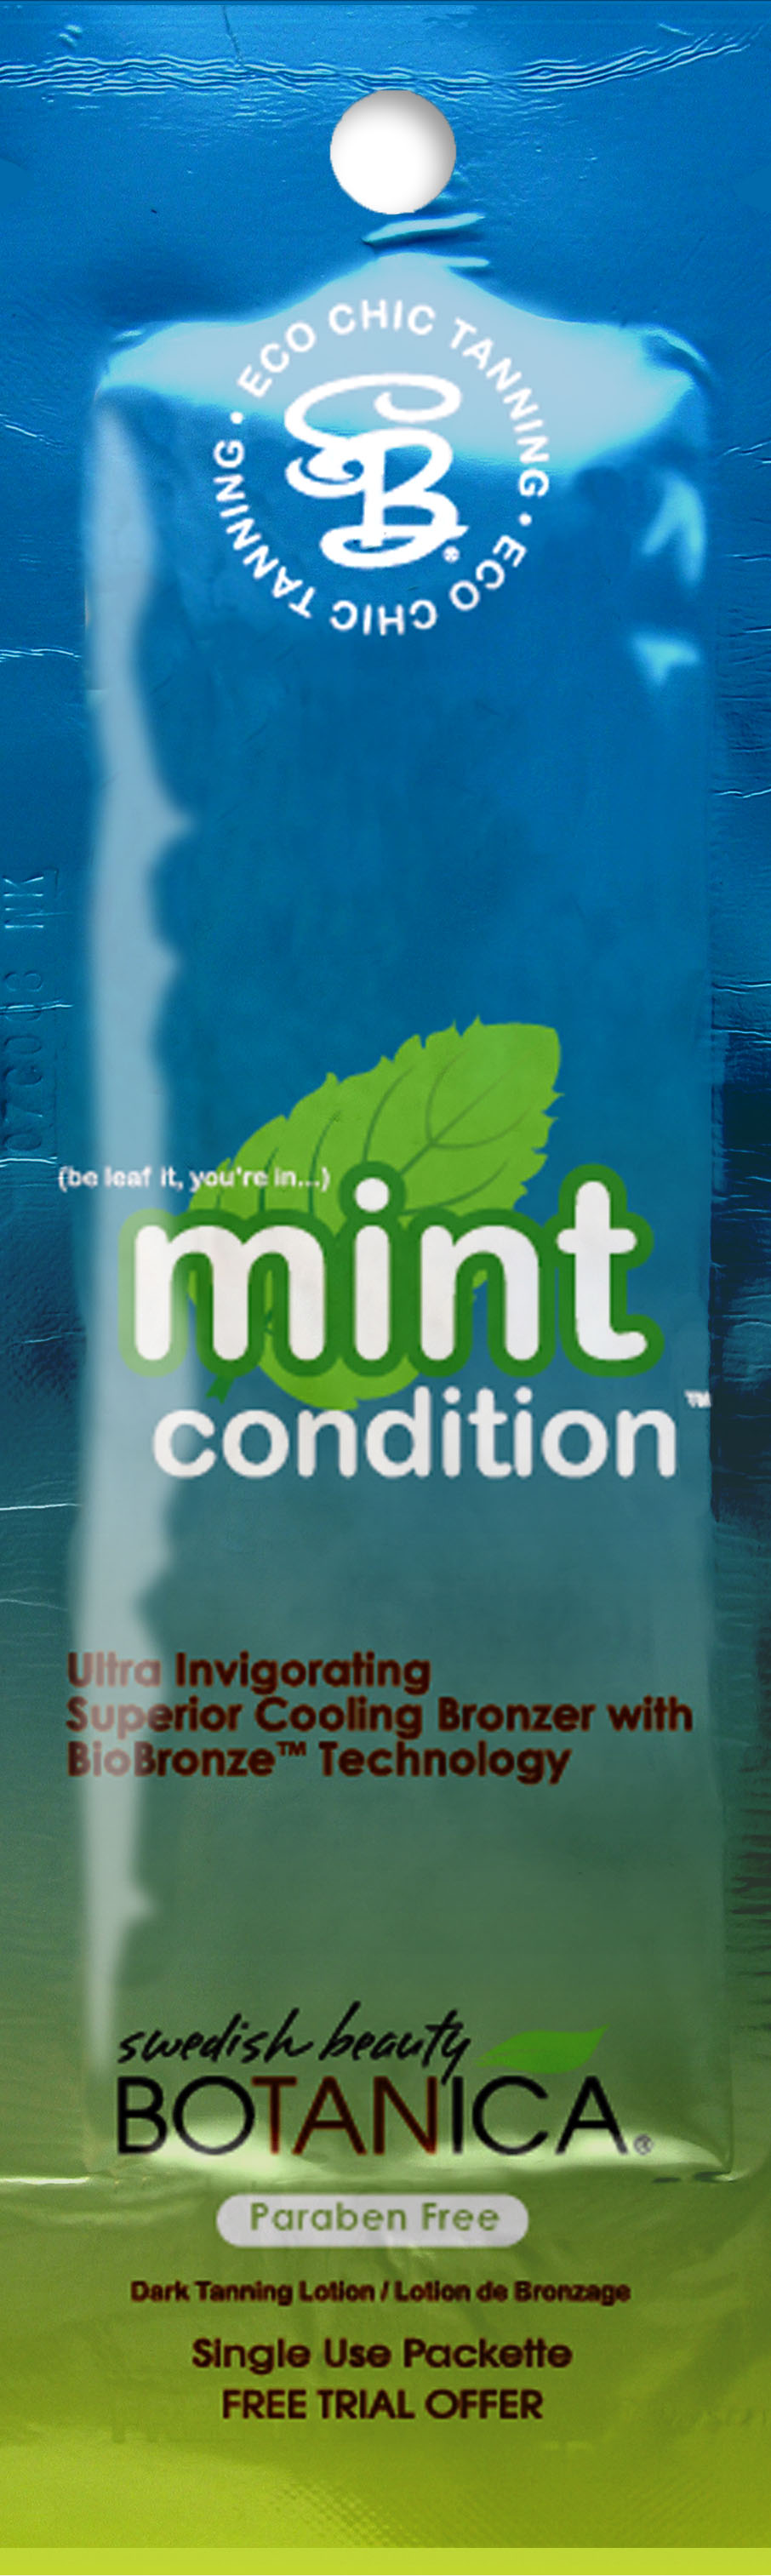 Mint Condition™ Pkt